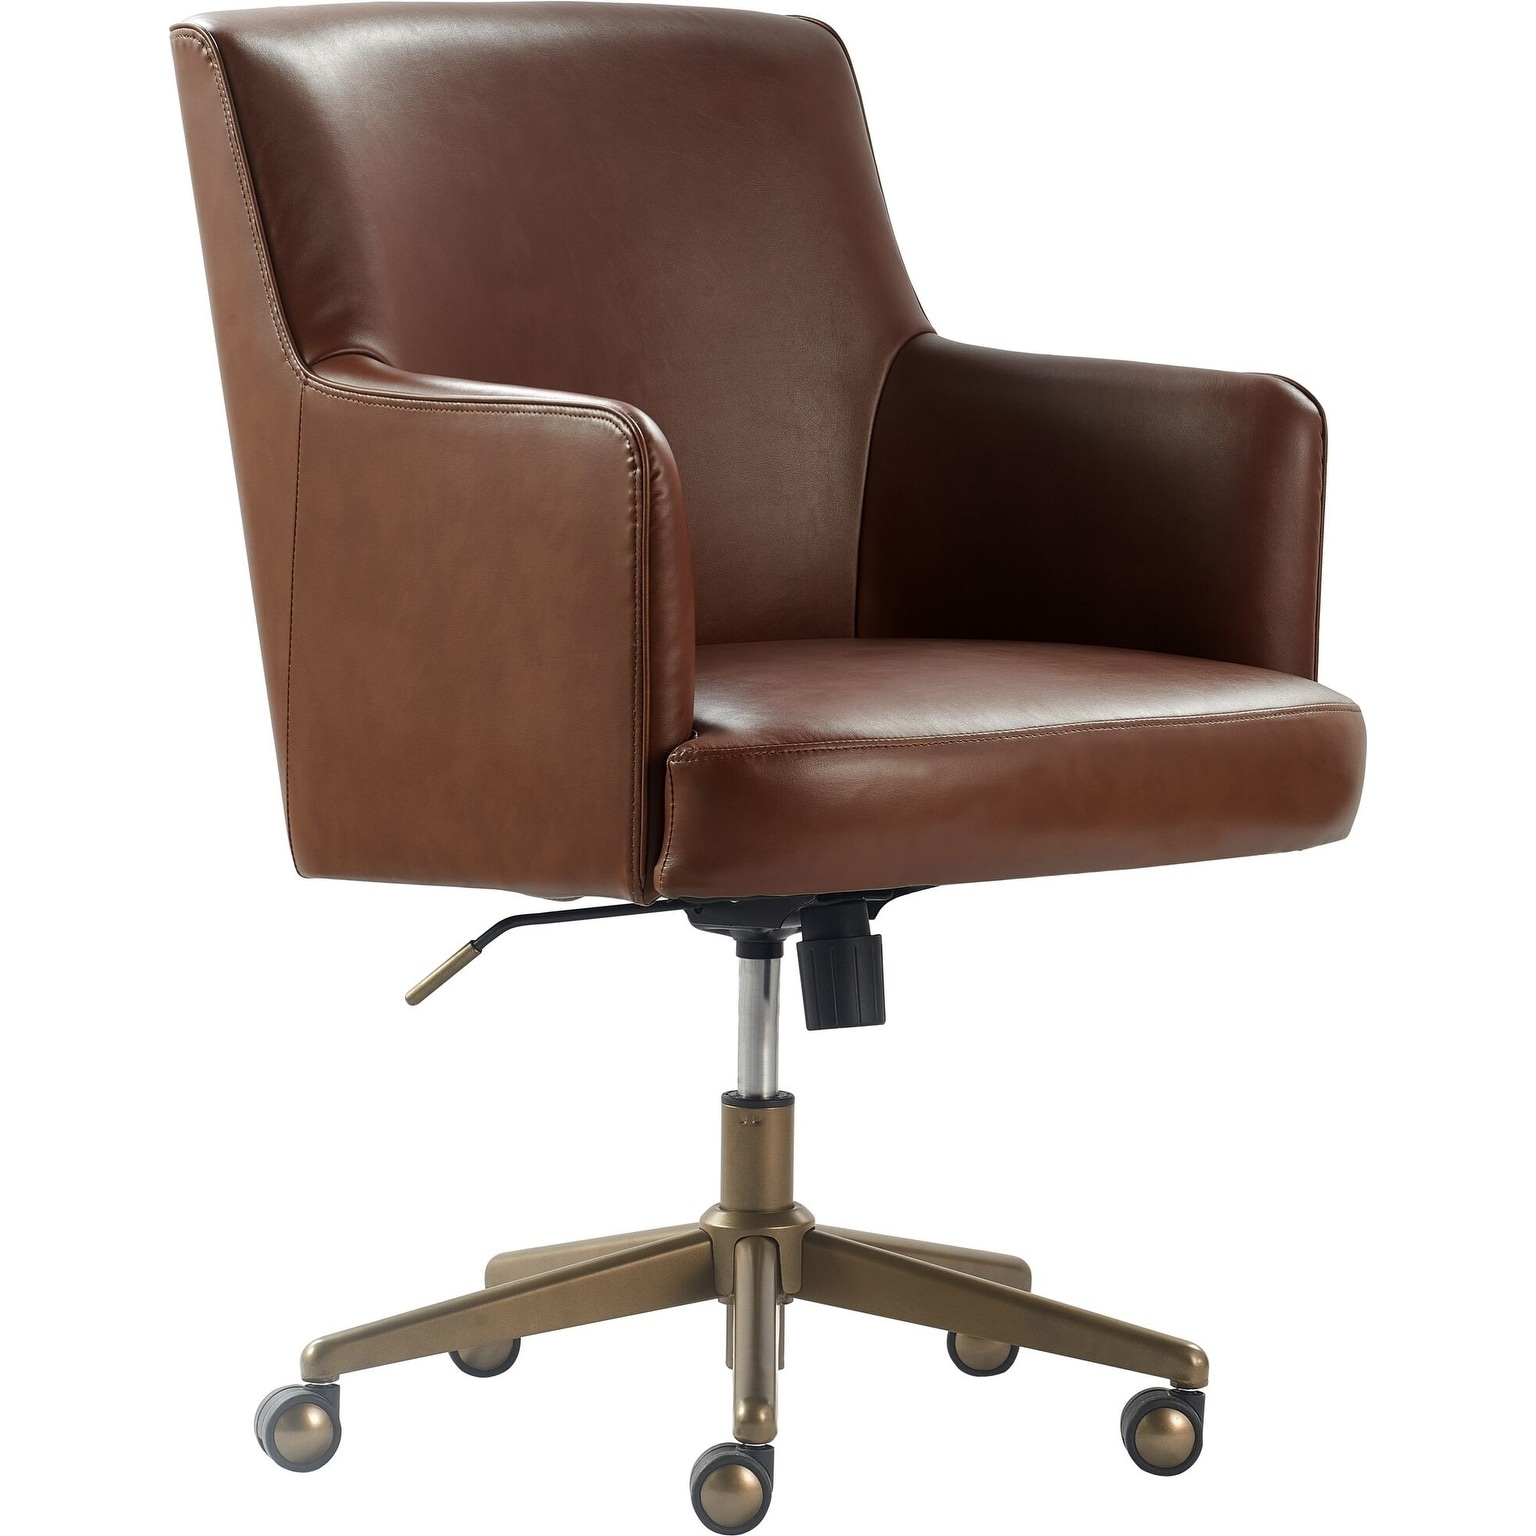 Tommy Hilfiger Belmont Home Office Chair